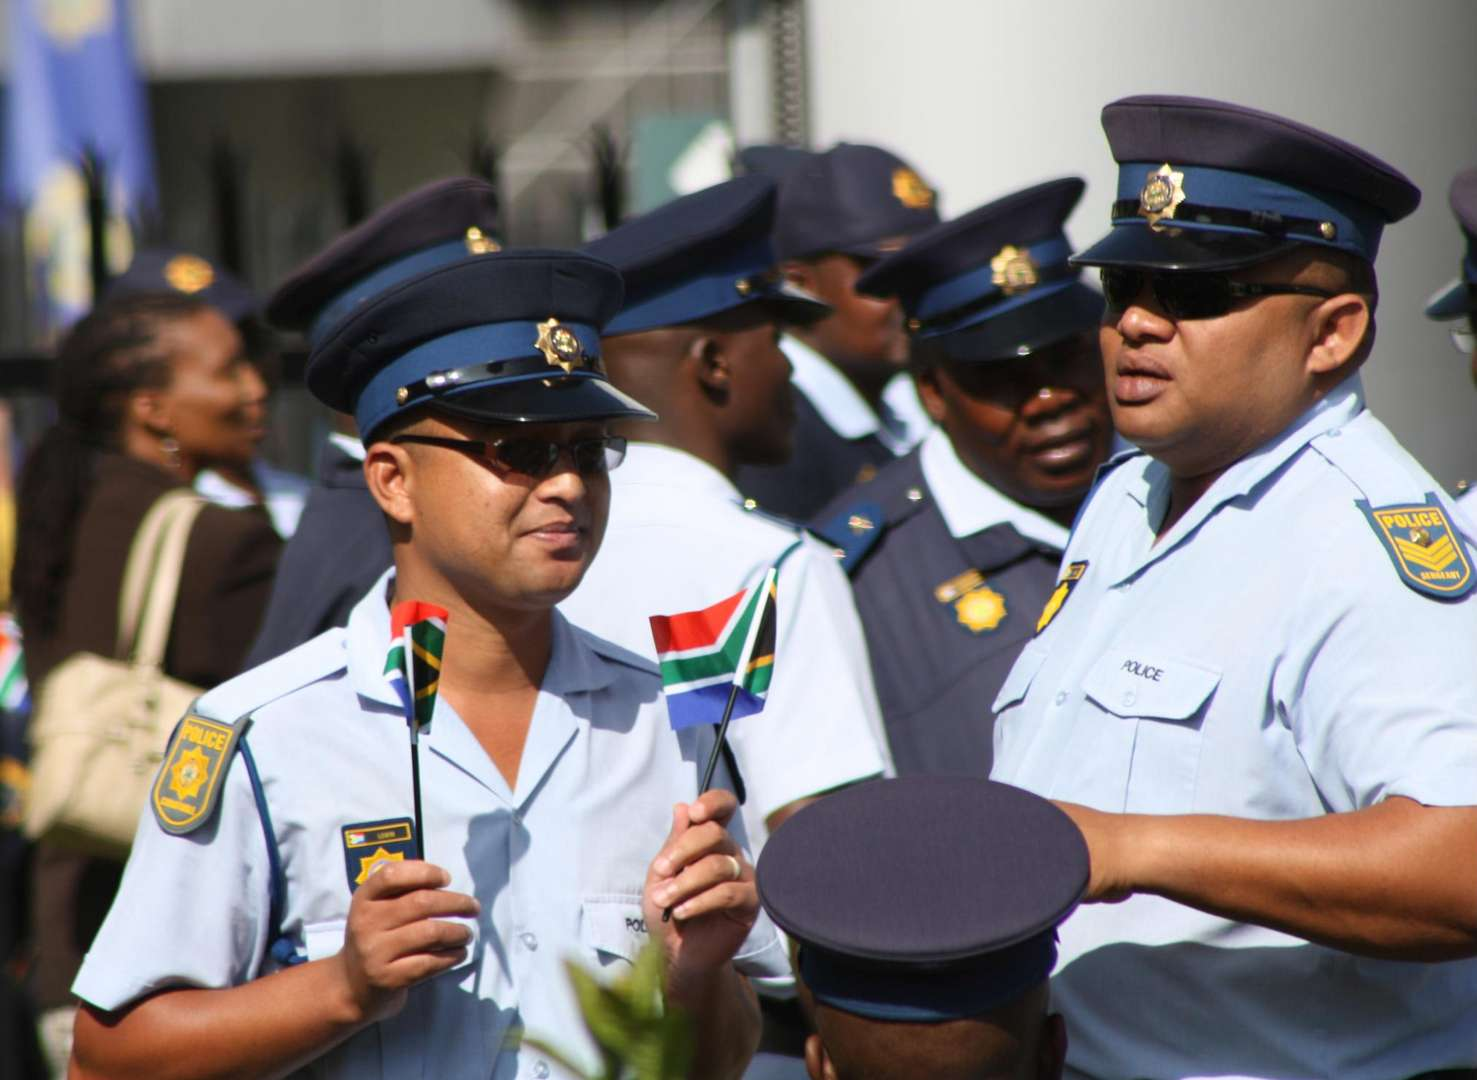 Hope for the South African Police Service